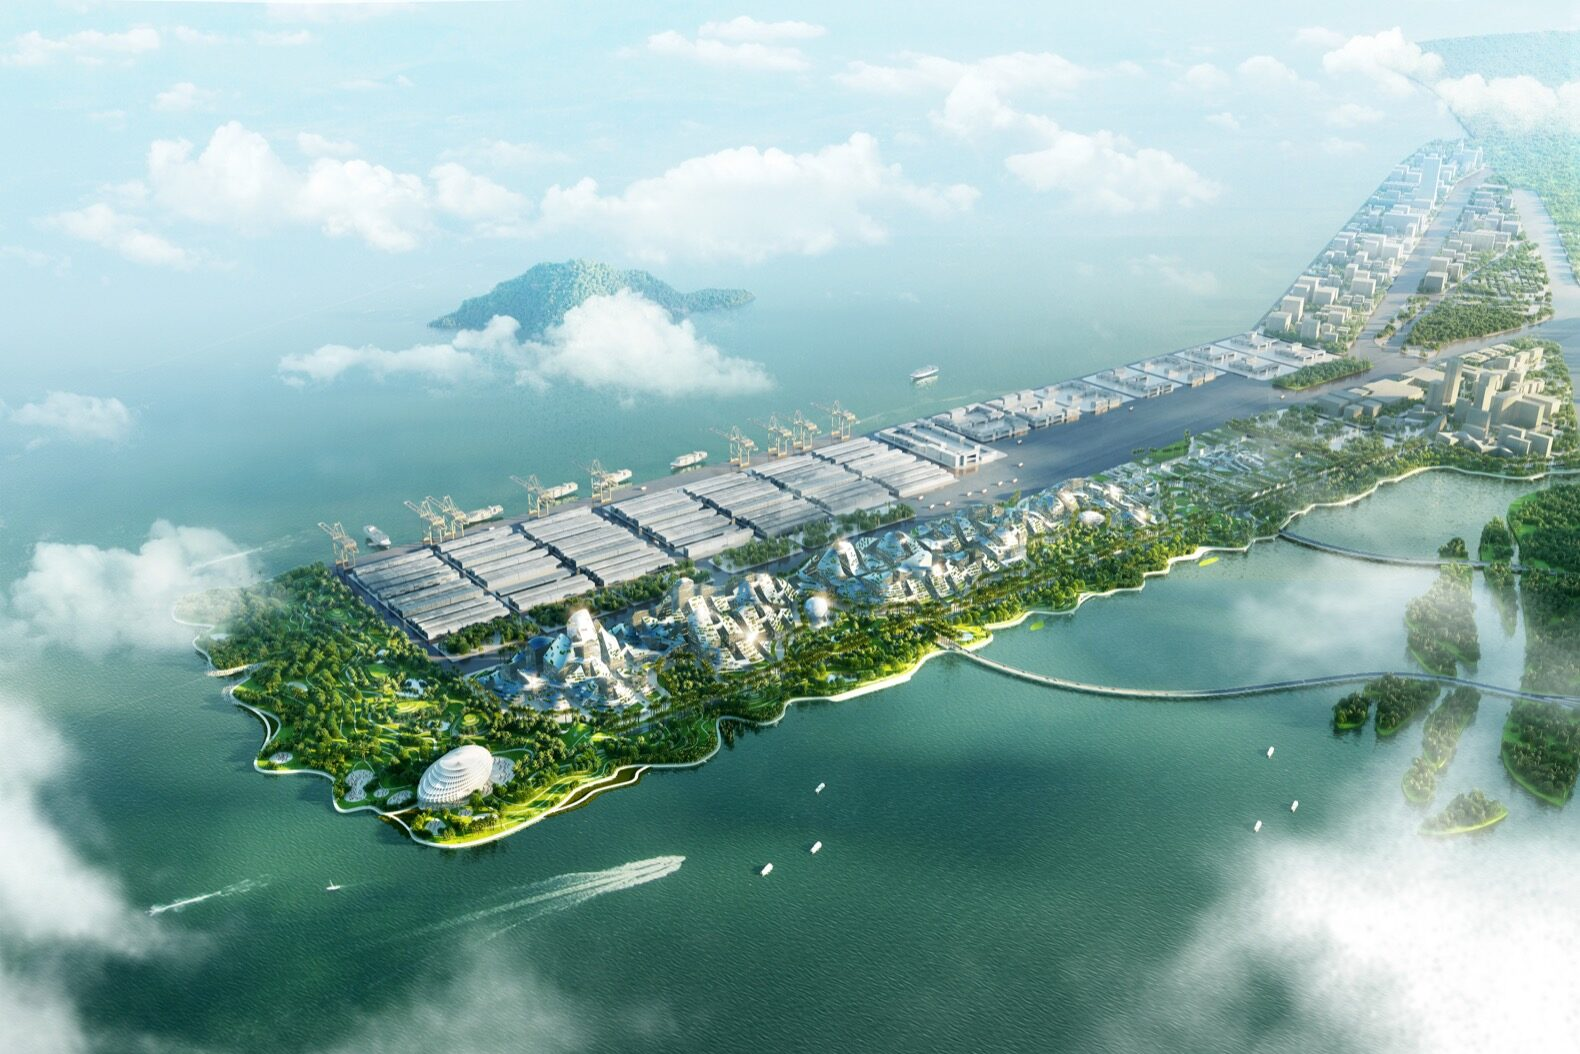 a birdseye view of a smart city on an island surrounded by water